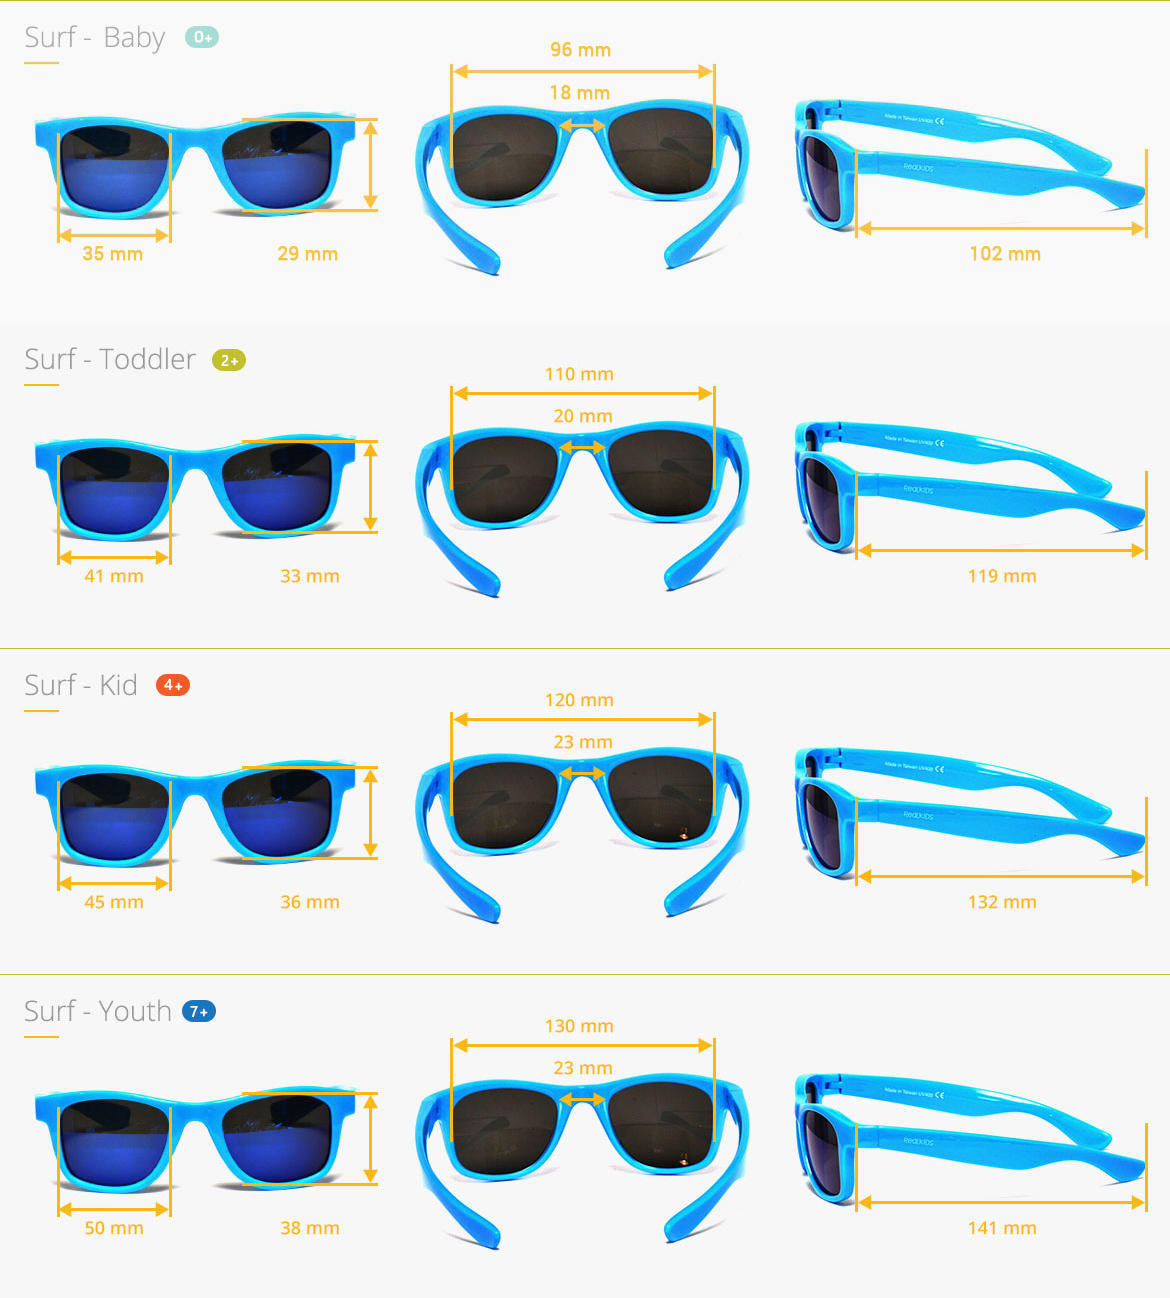 Sizes of Real Shades Surf sunglasses